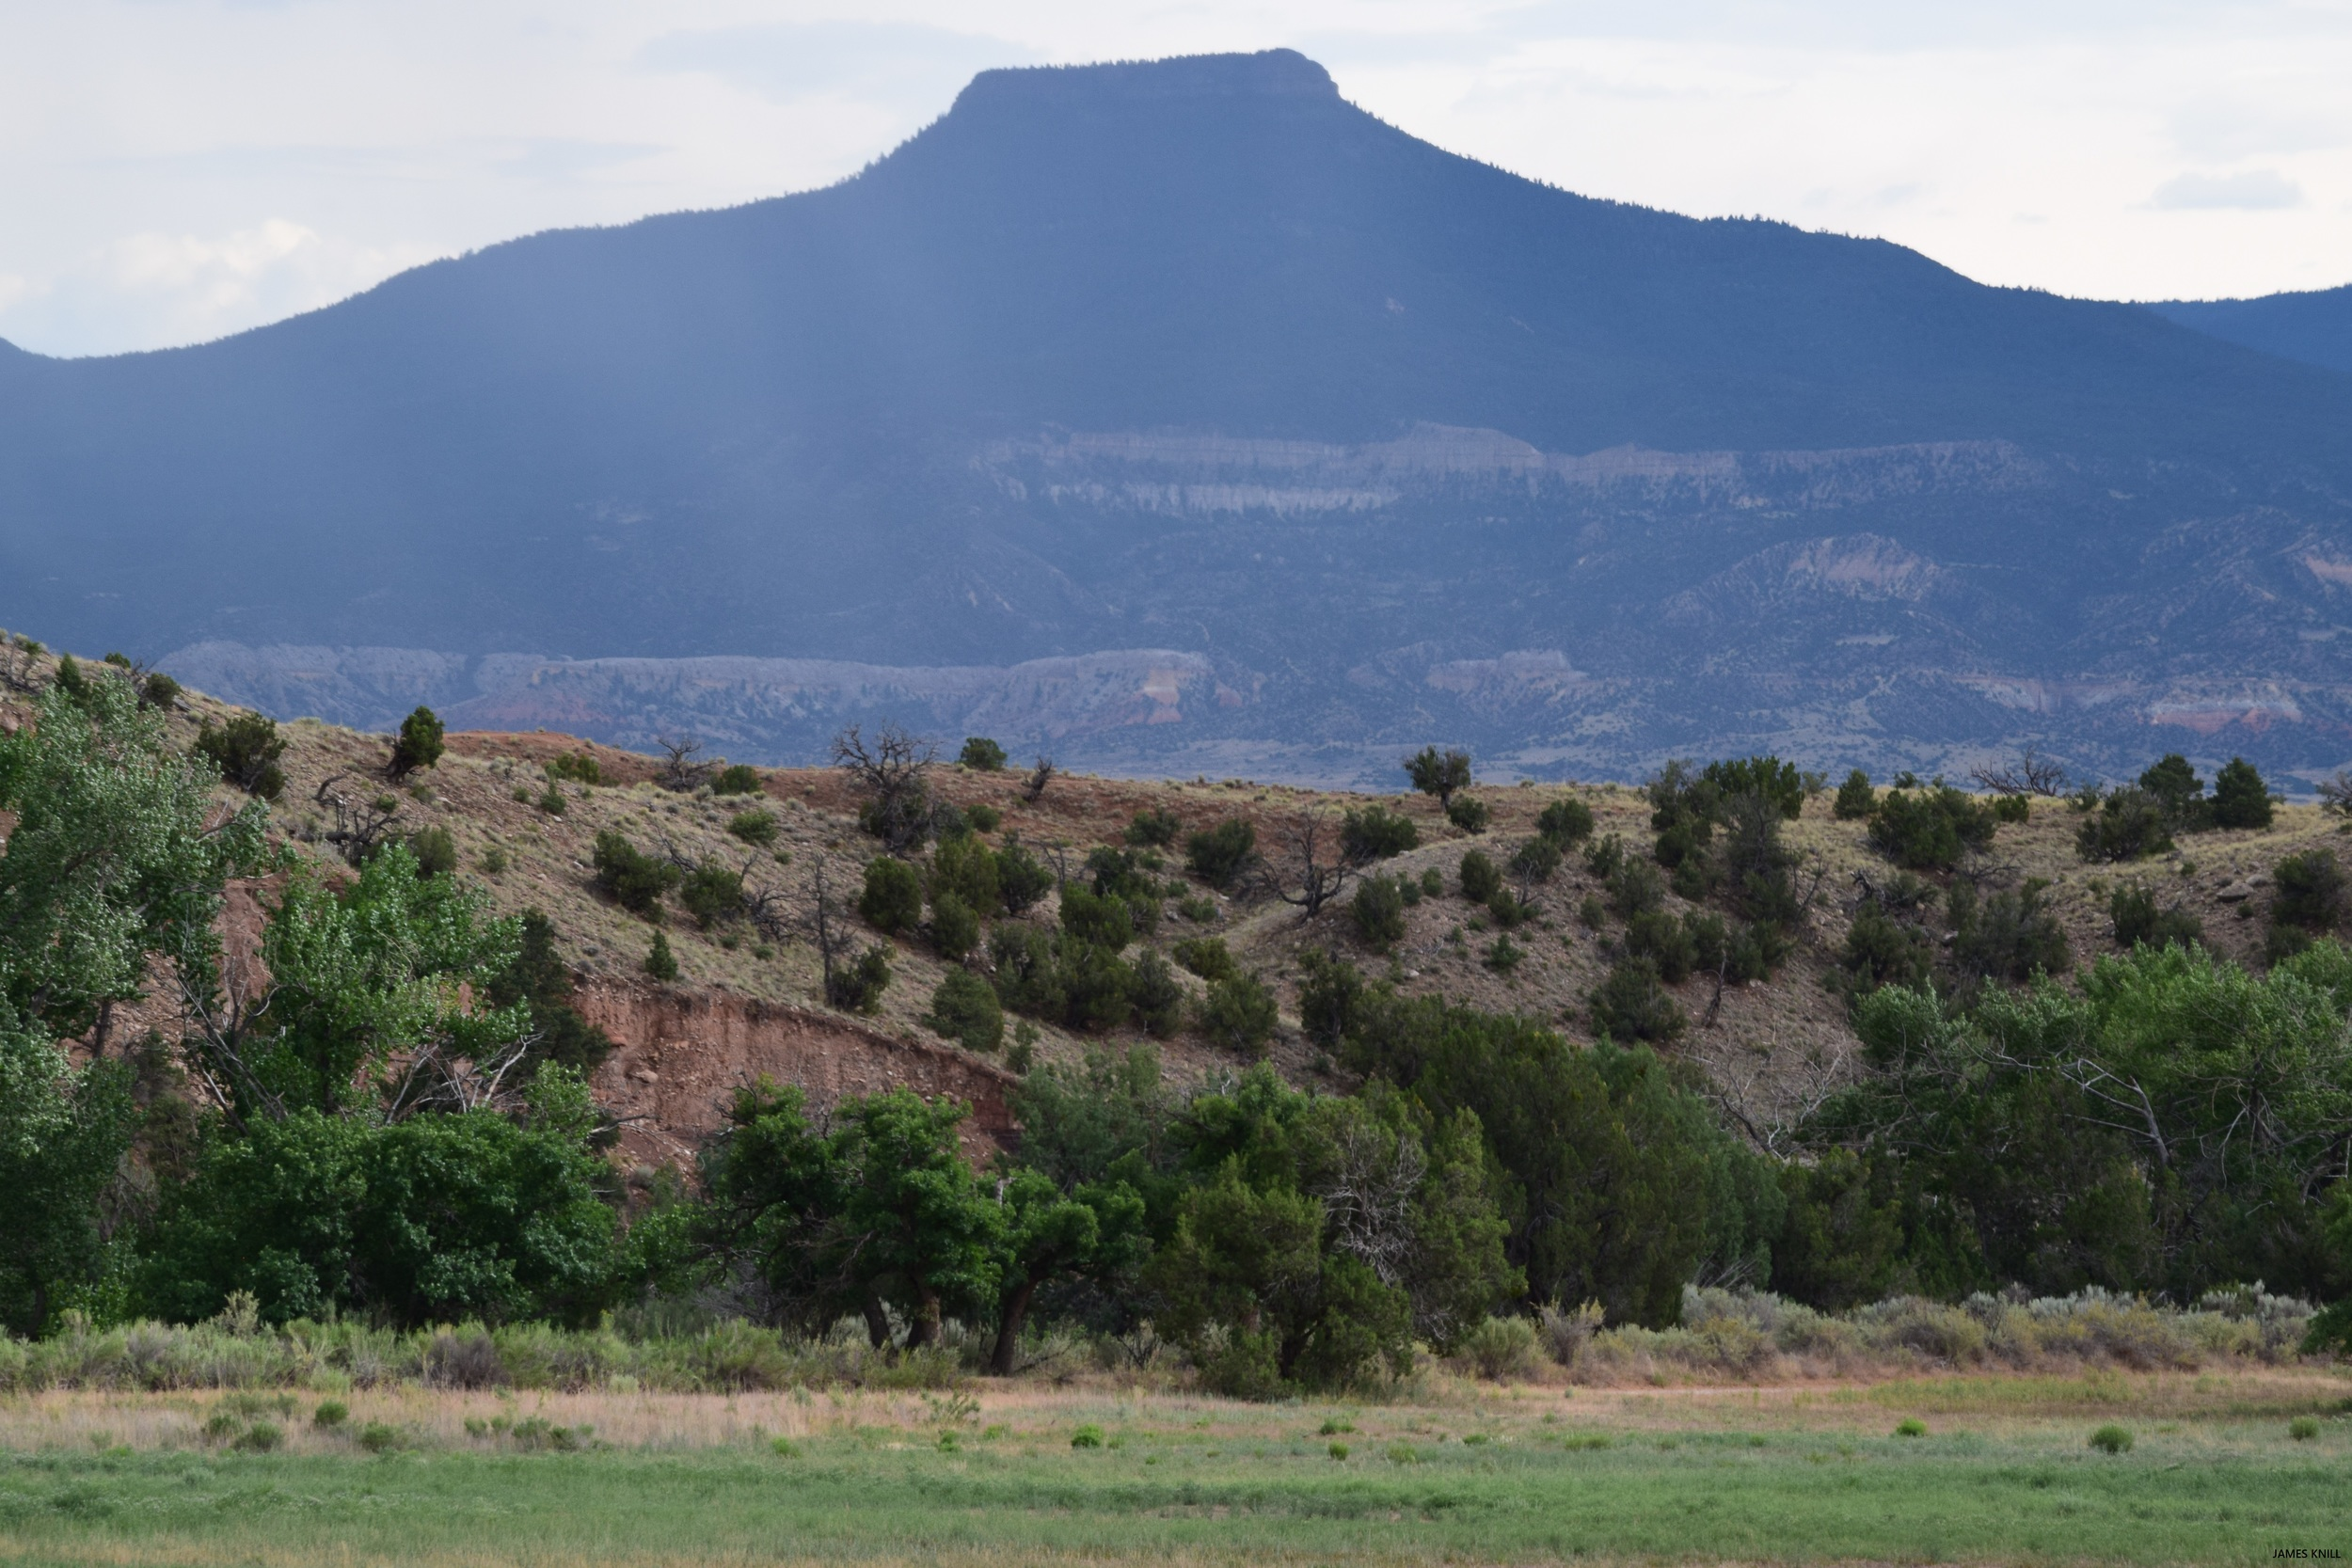 Georgia O'Keefe Mountainscape, New Mexico